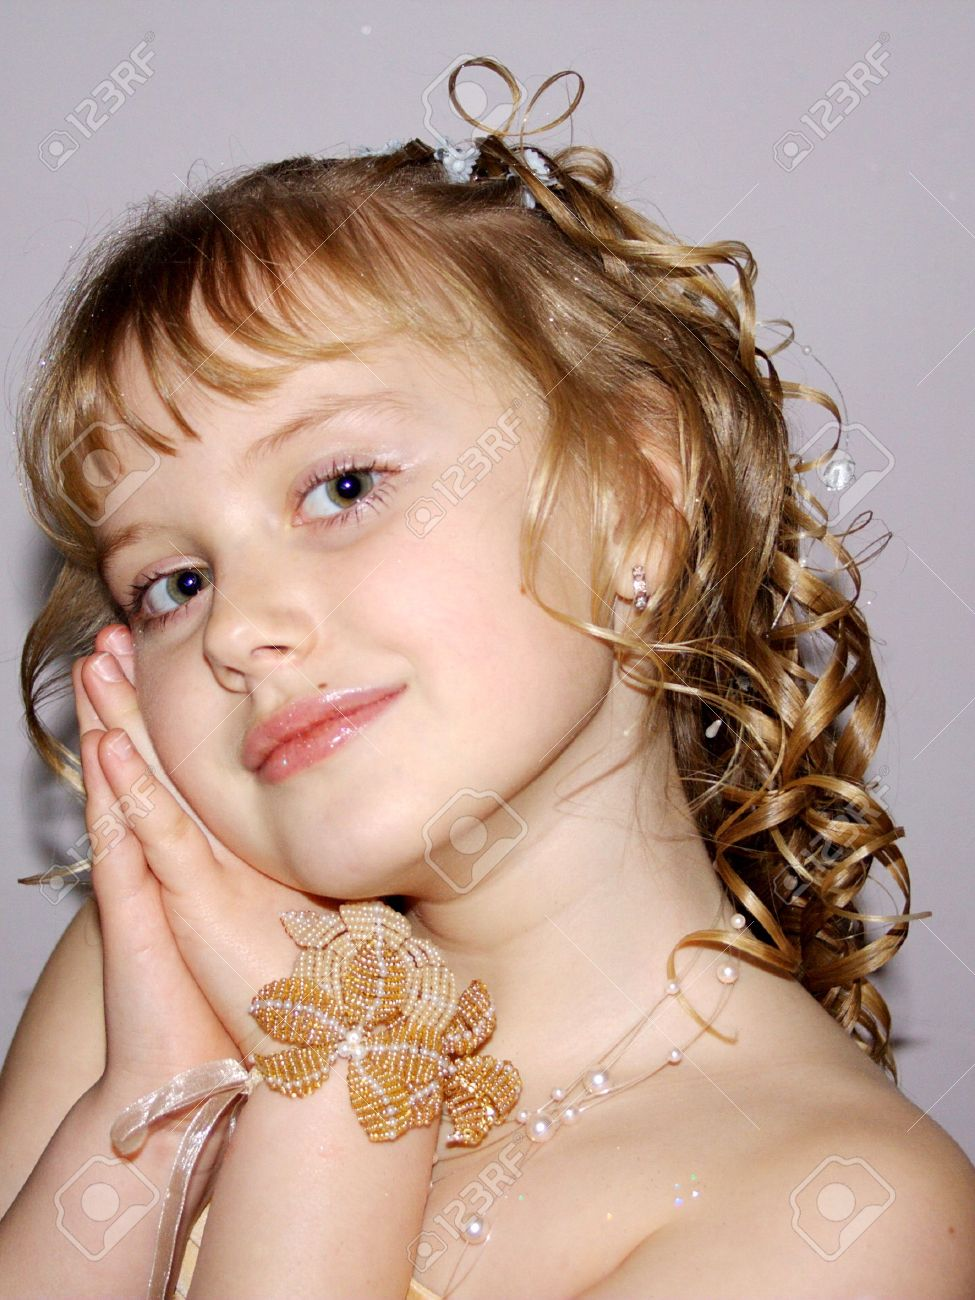 young model girl looking at camera stock photo picture and royalty